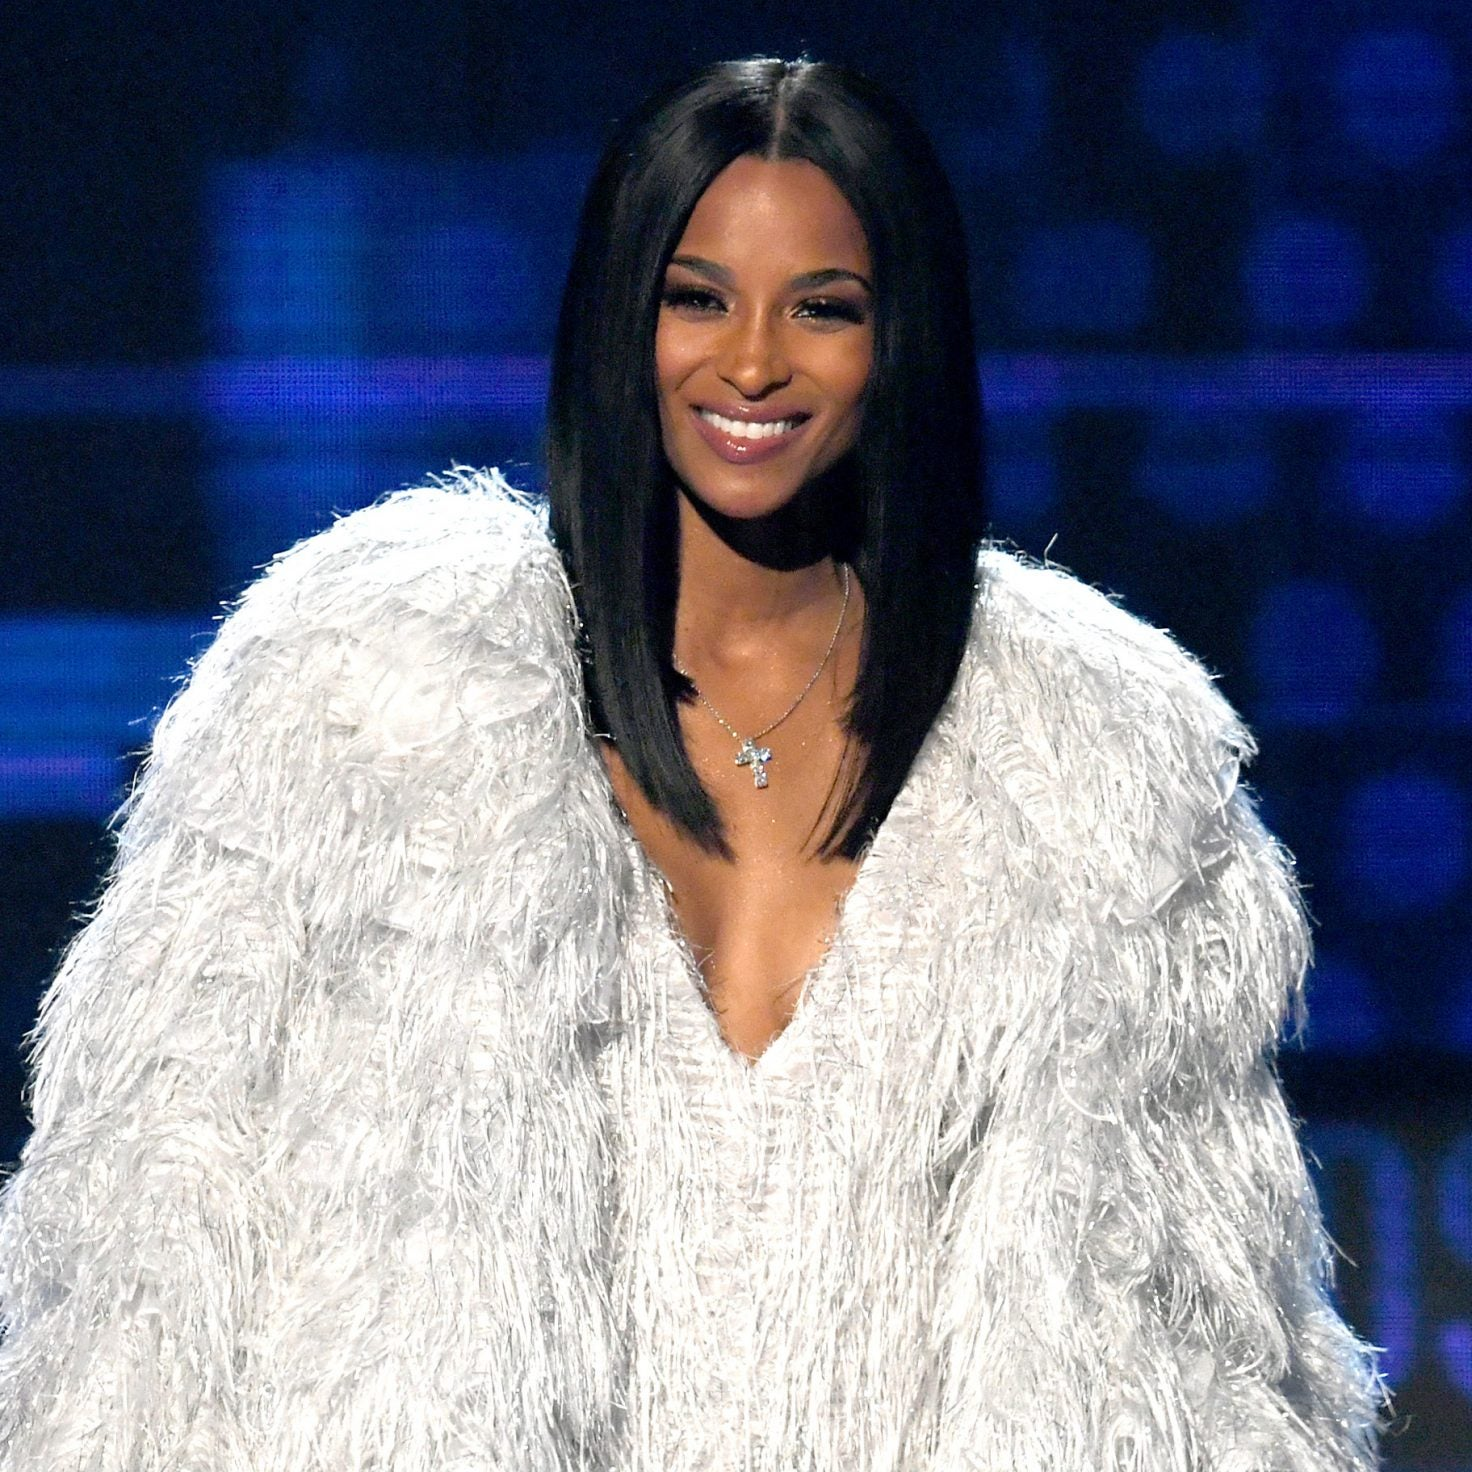 Ciara Is Pregnant With Baby #3, And Her Maternity Photo Will Make You Gasp